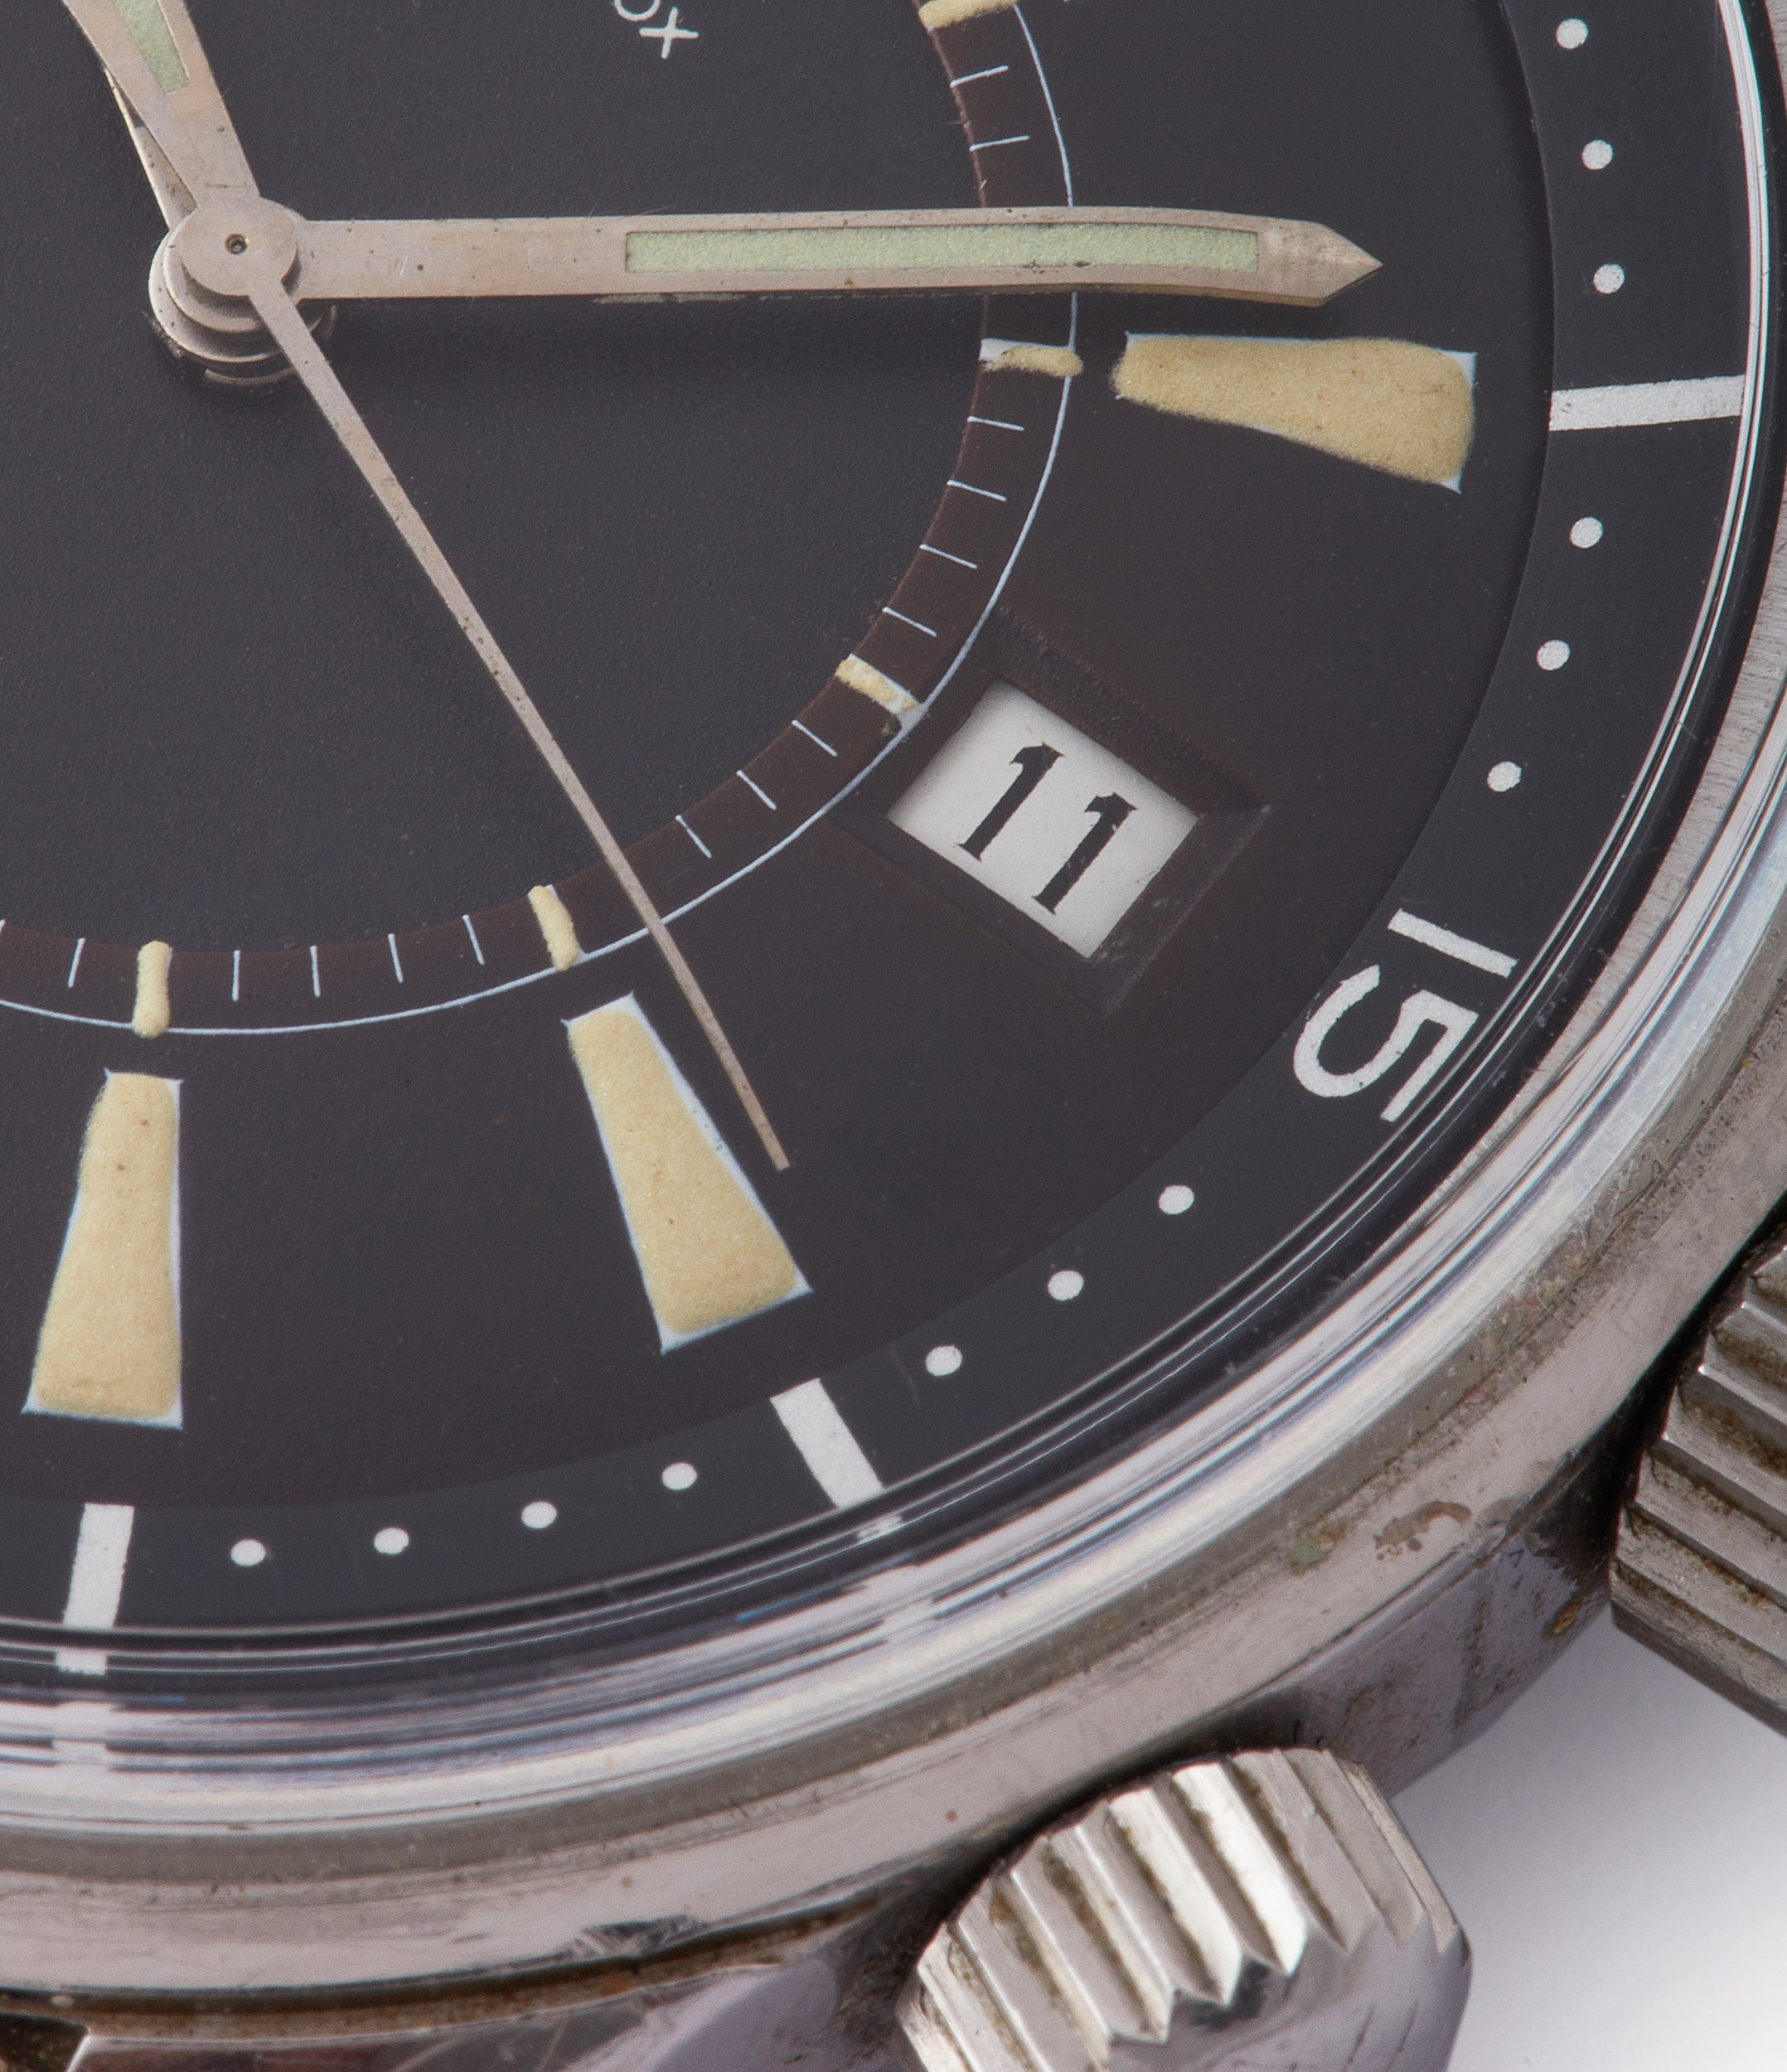 Polaris E859 vintage Jaeger-LeCoultre Memovox alarm diving watch for sale at A Collected Man London UK specialist of rare watches